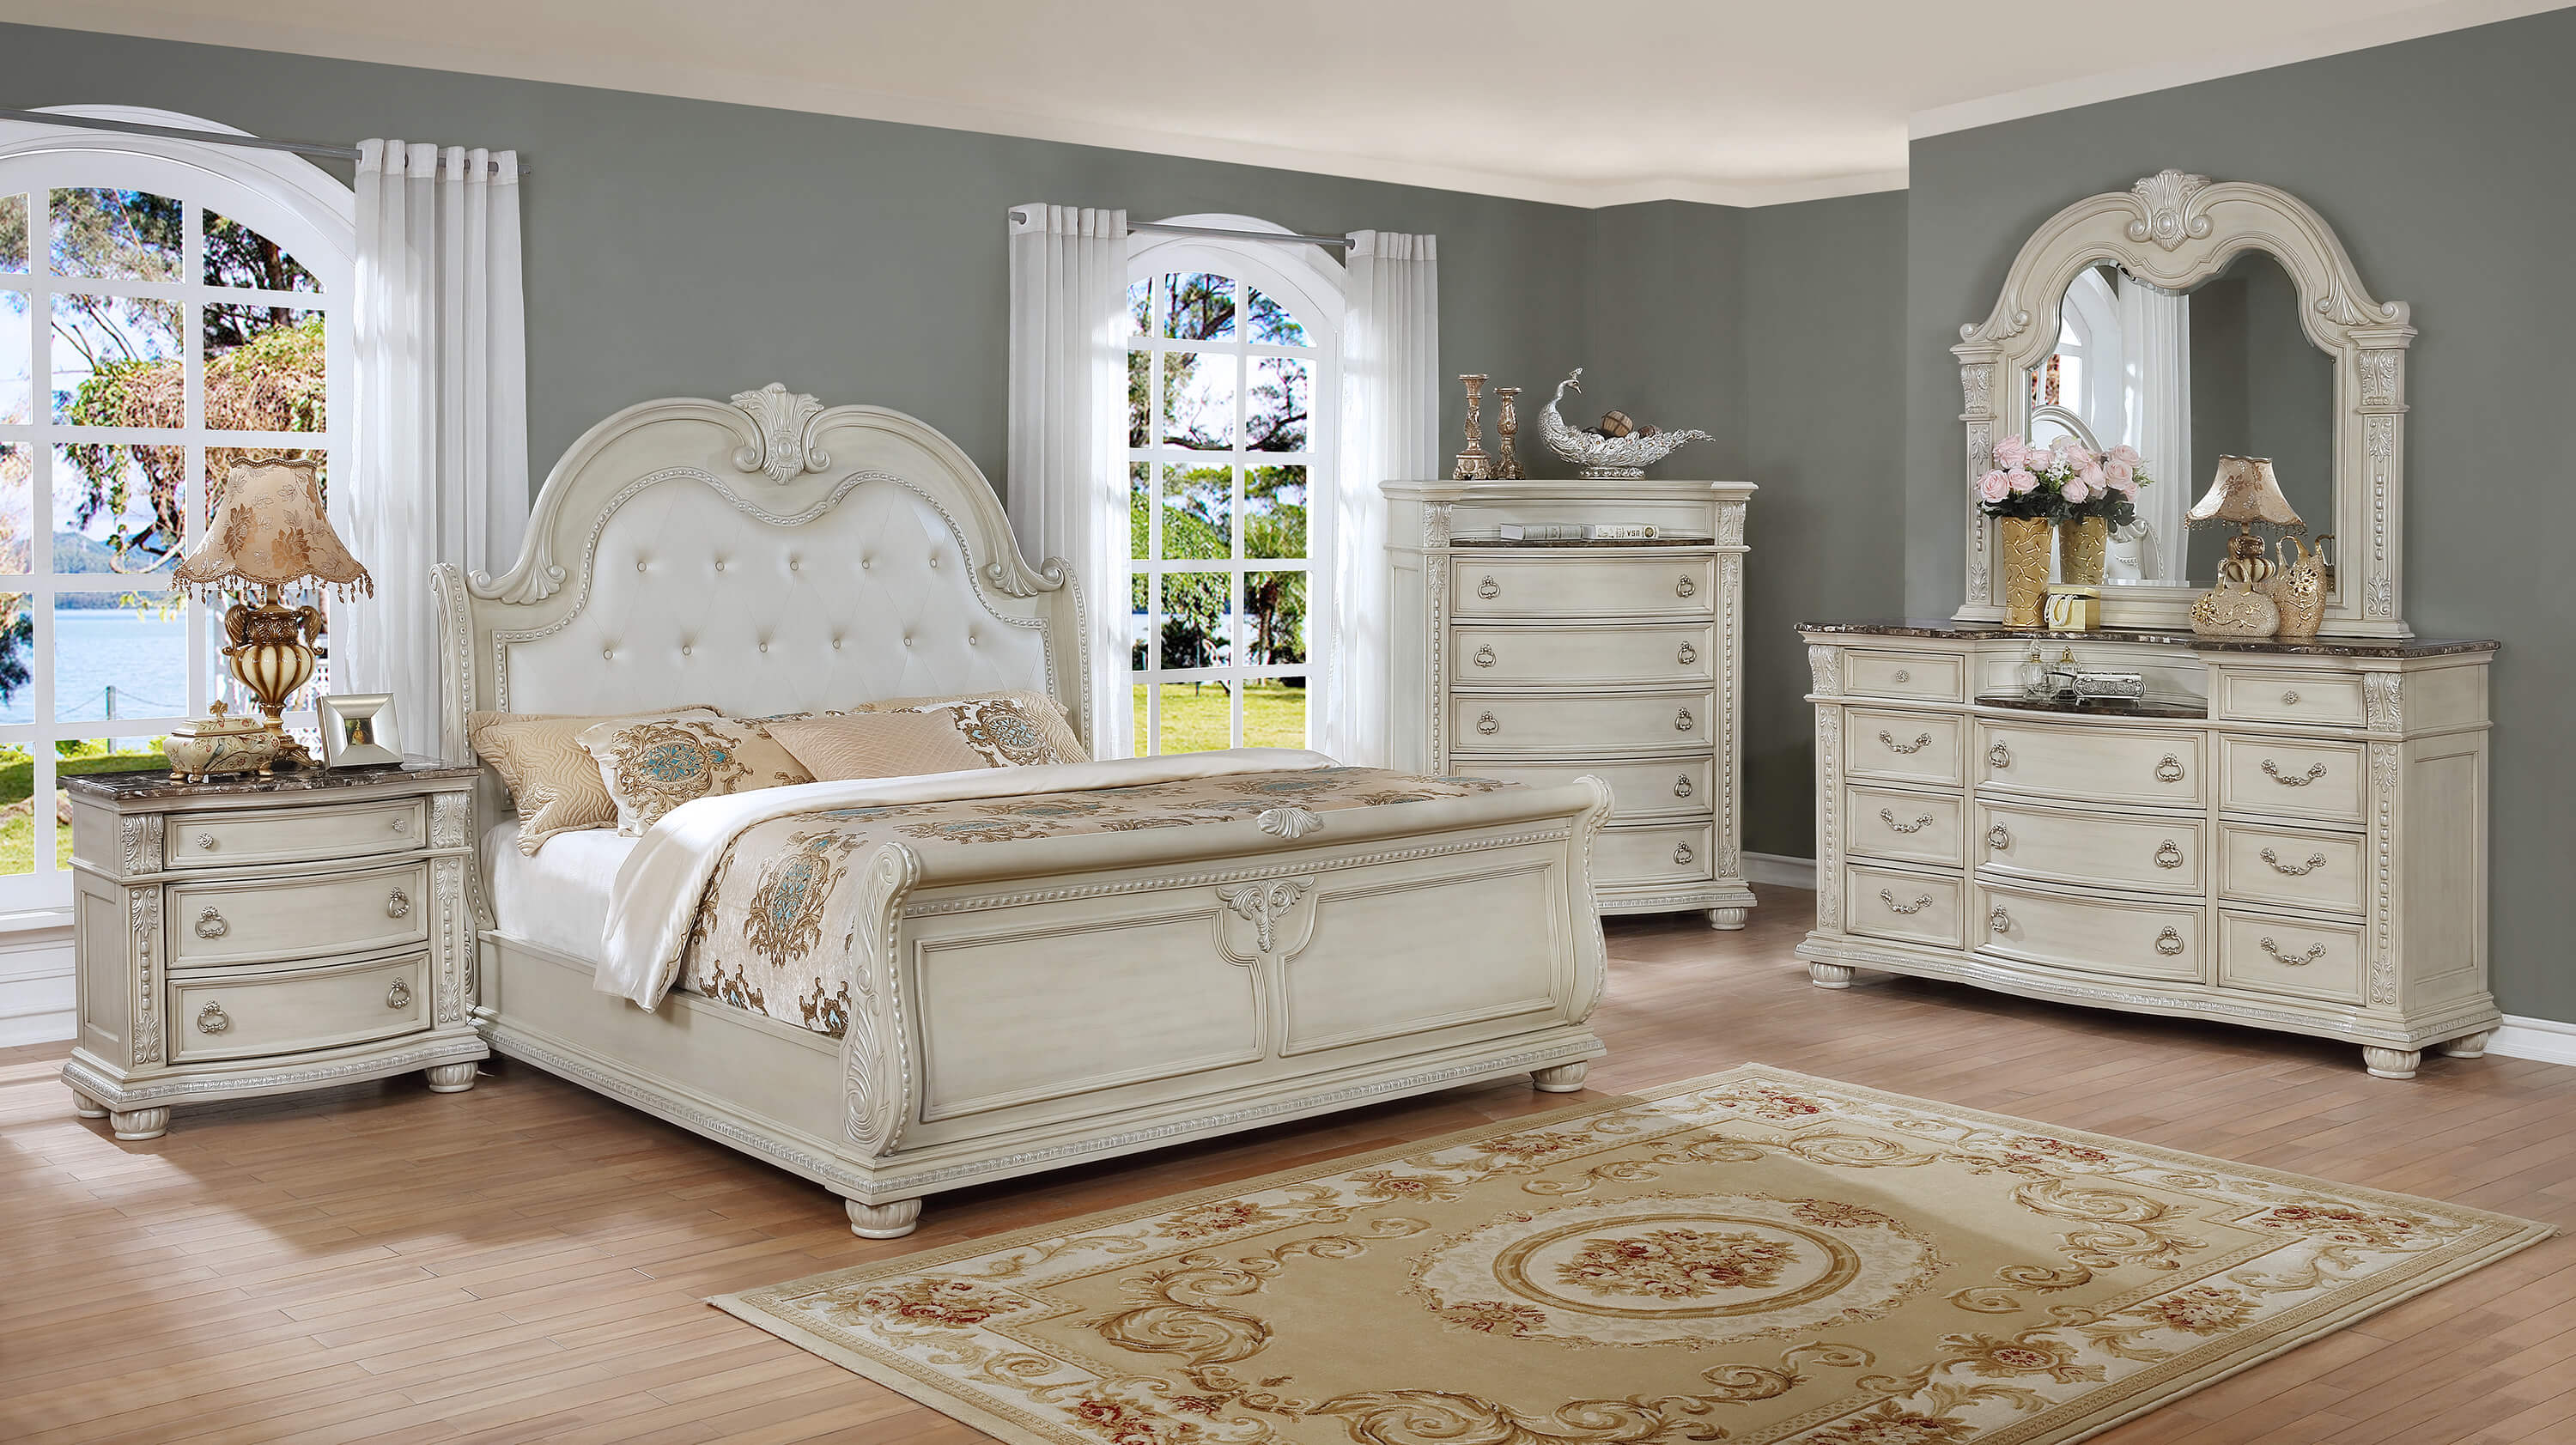 stanley antique white marble bedroom set bedroom furniture sets. Black Bedroom Furniture Sets. Home Design Ideas